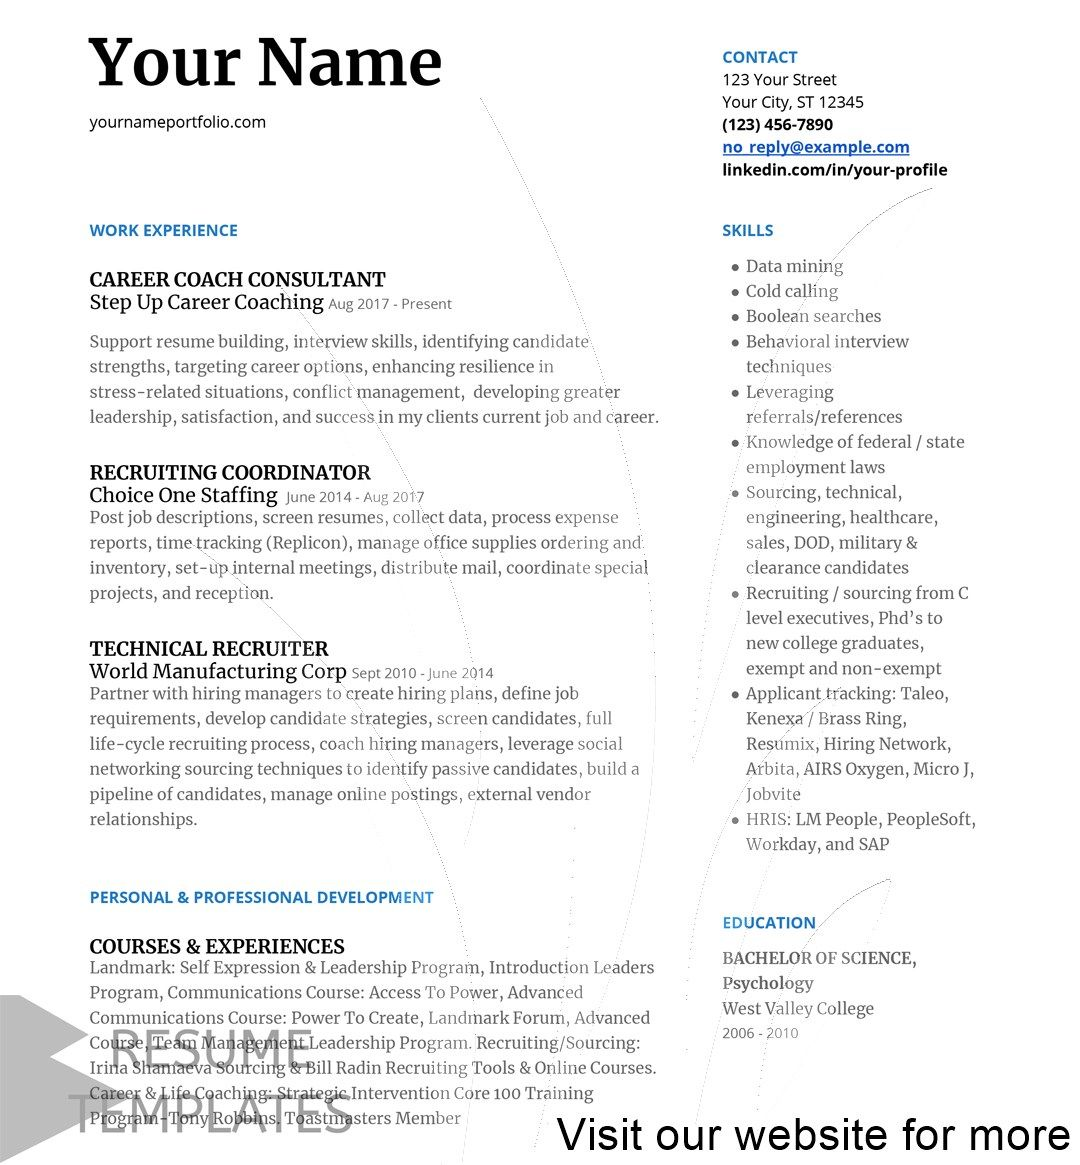 resume builder free best Free in 2020 Resume cover